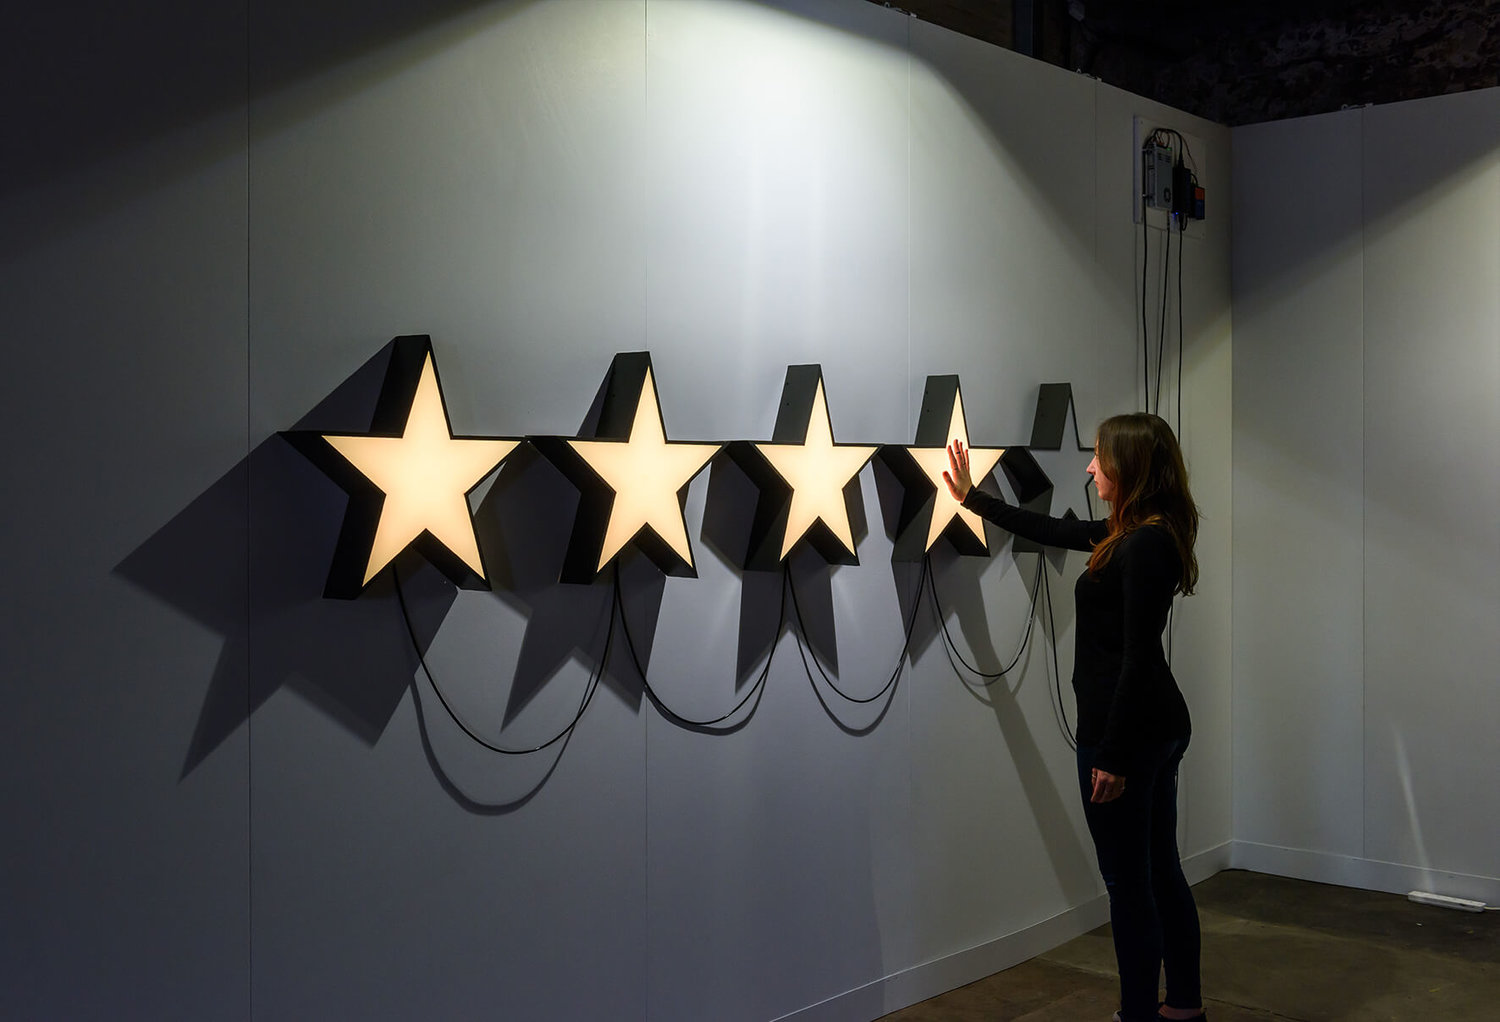 The_Constant_Need_For_Approval_James_Burke_Artist_sculpture_installation_london_lighting_interactive_acrylicize_4.jpg